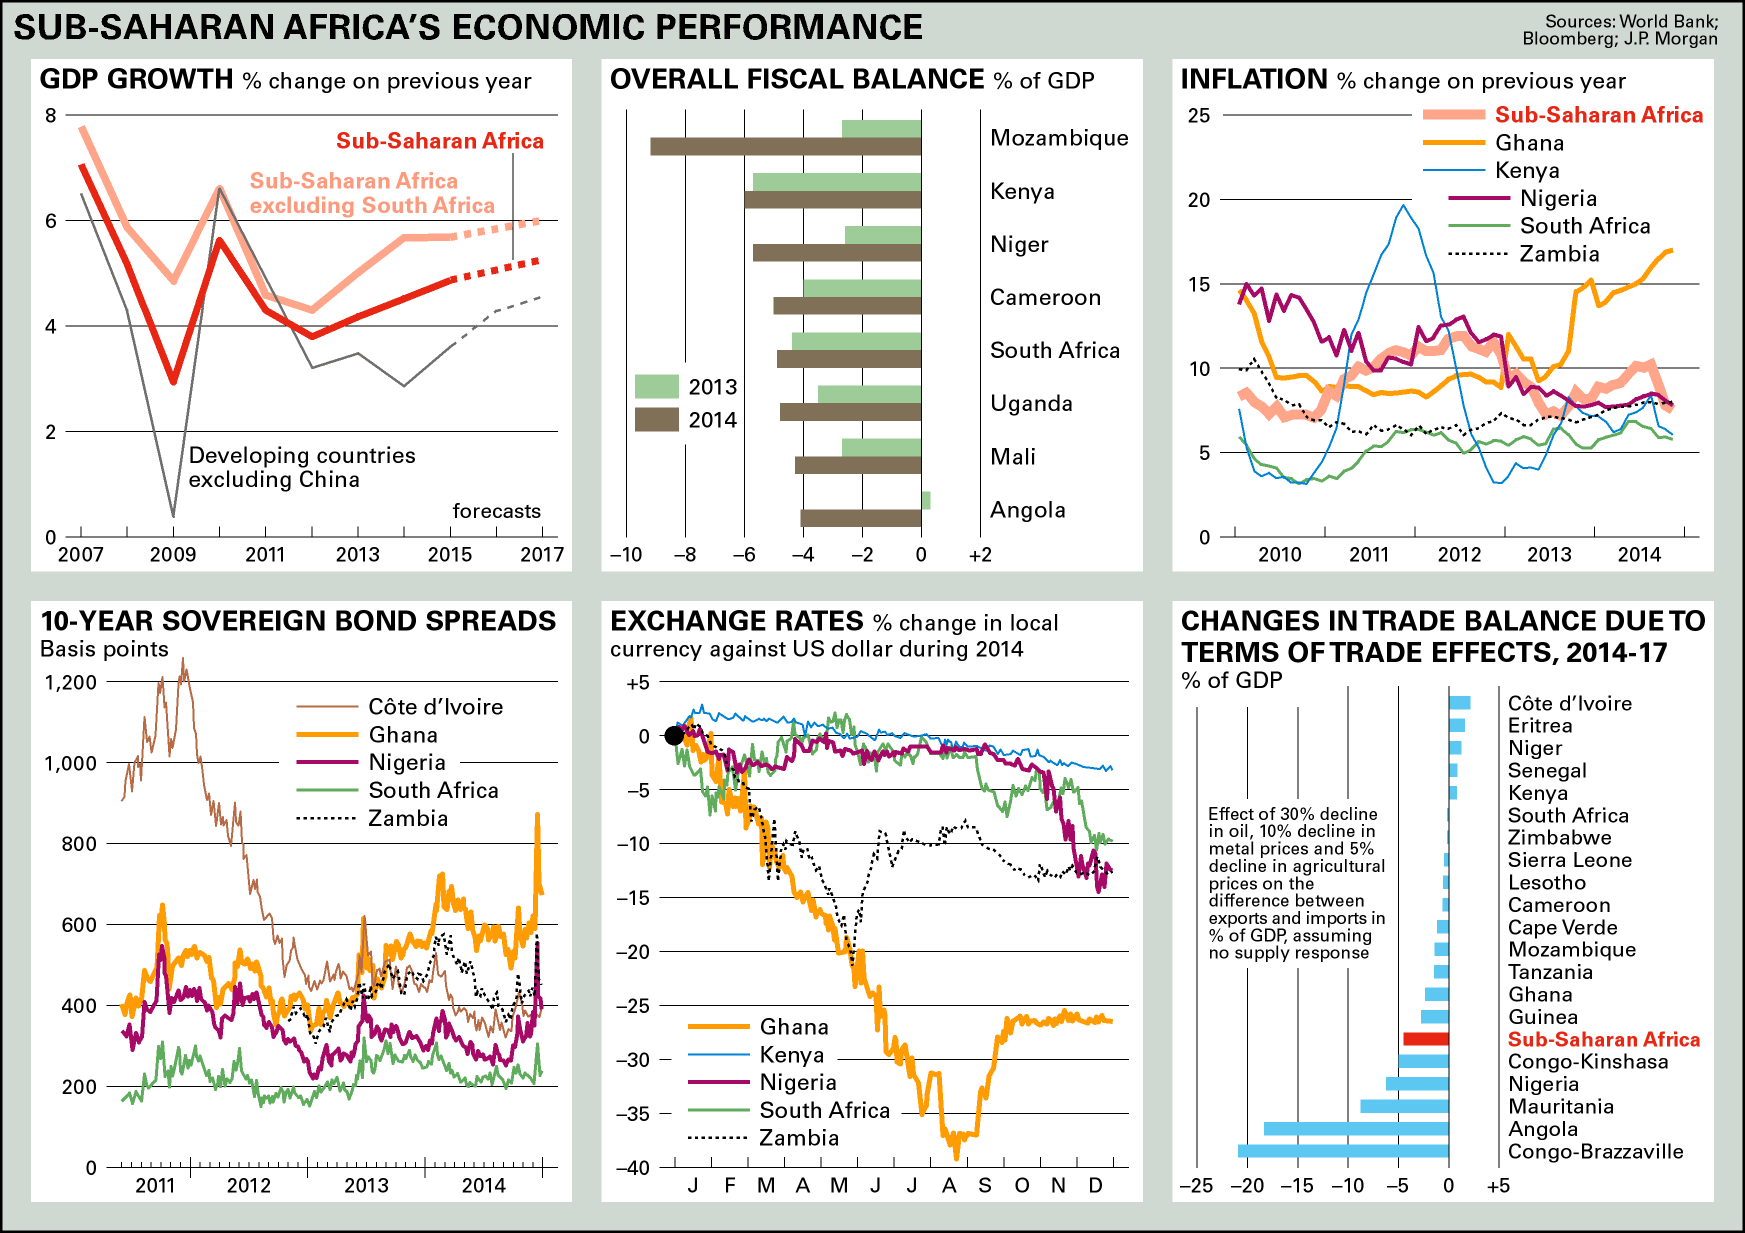 Sub-Saharan Africa's economic performance chart